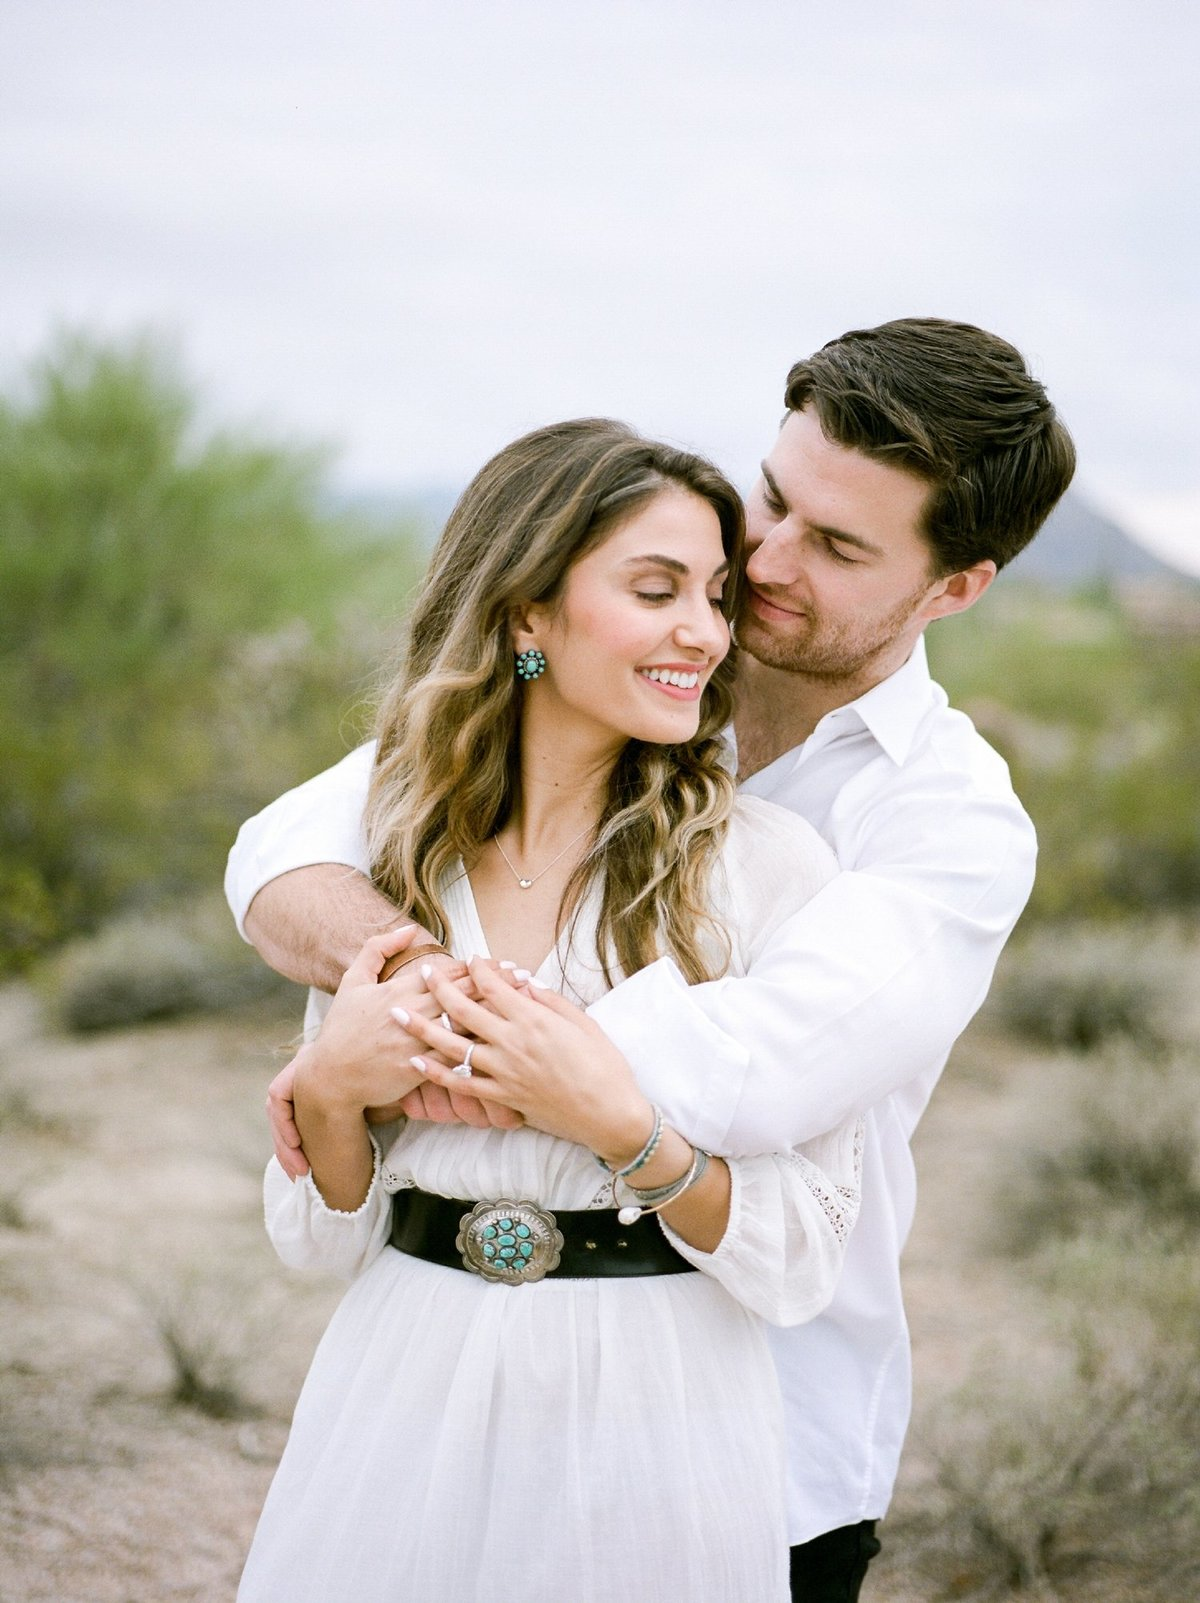 scottsdale-arizona-wedding-photographer-rachael-koscica_1066